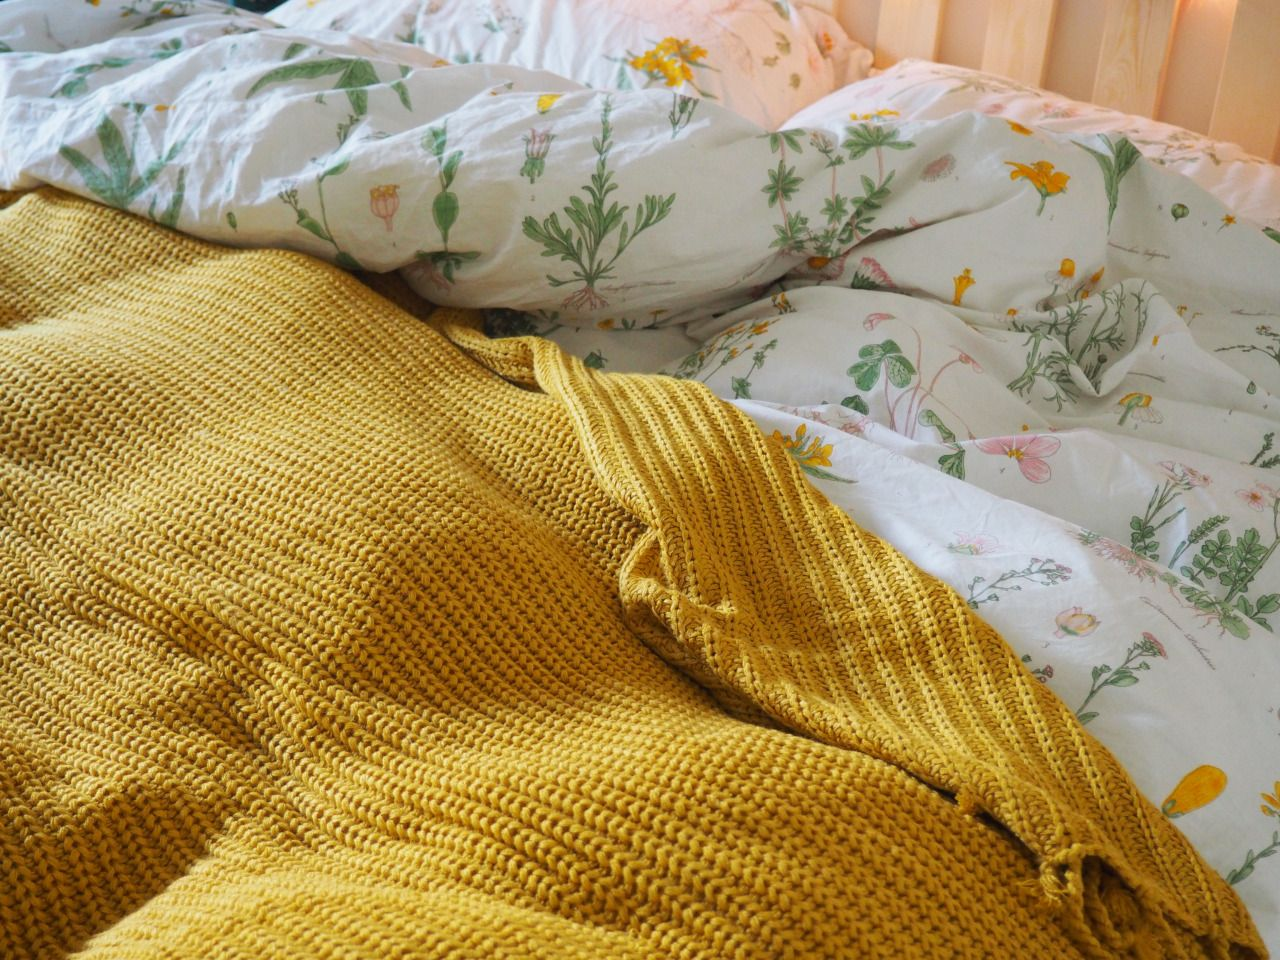 Yellow Bedding Bed Sheets Bedspread Mustard Bedroom